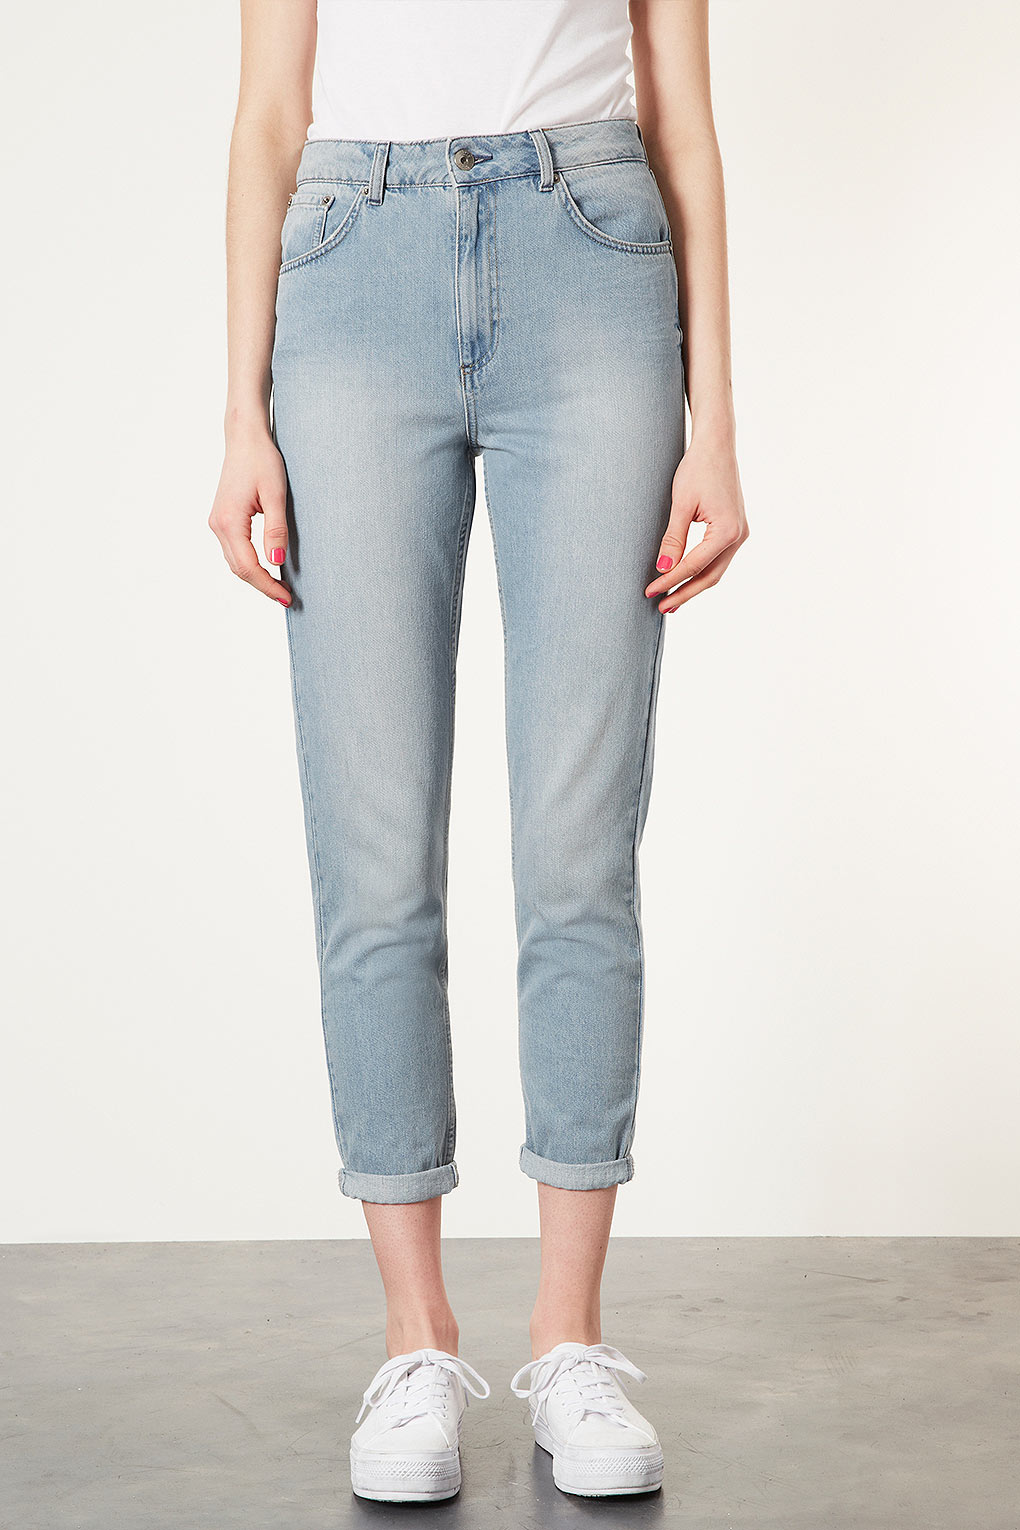 Topshop moto high waisted mom jeans